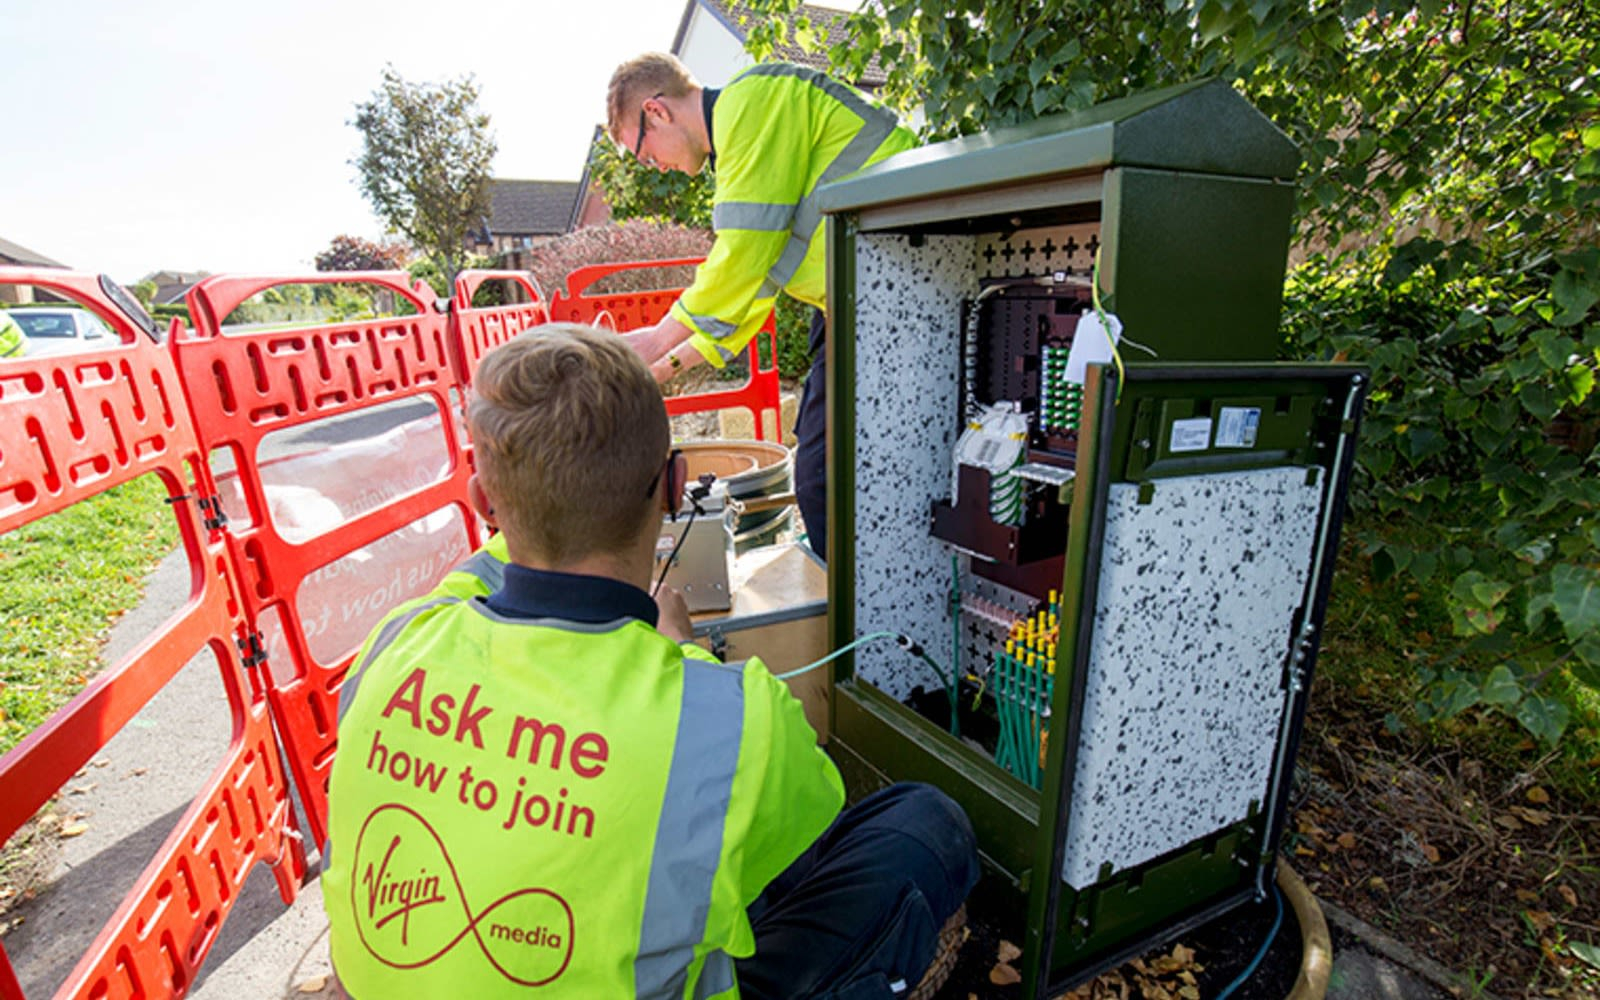 A Virgin Media engineer connects a broadband connection at an exchange point